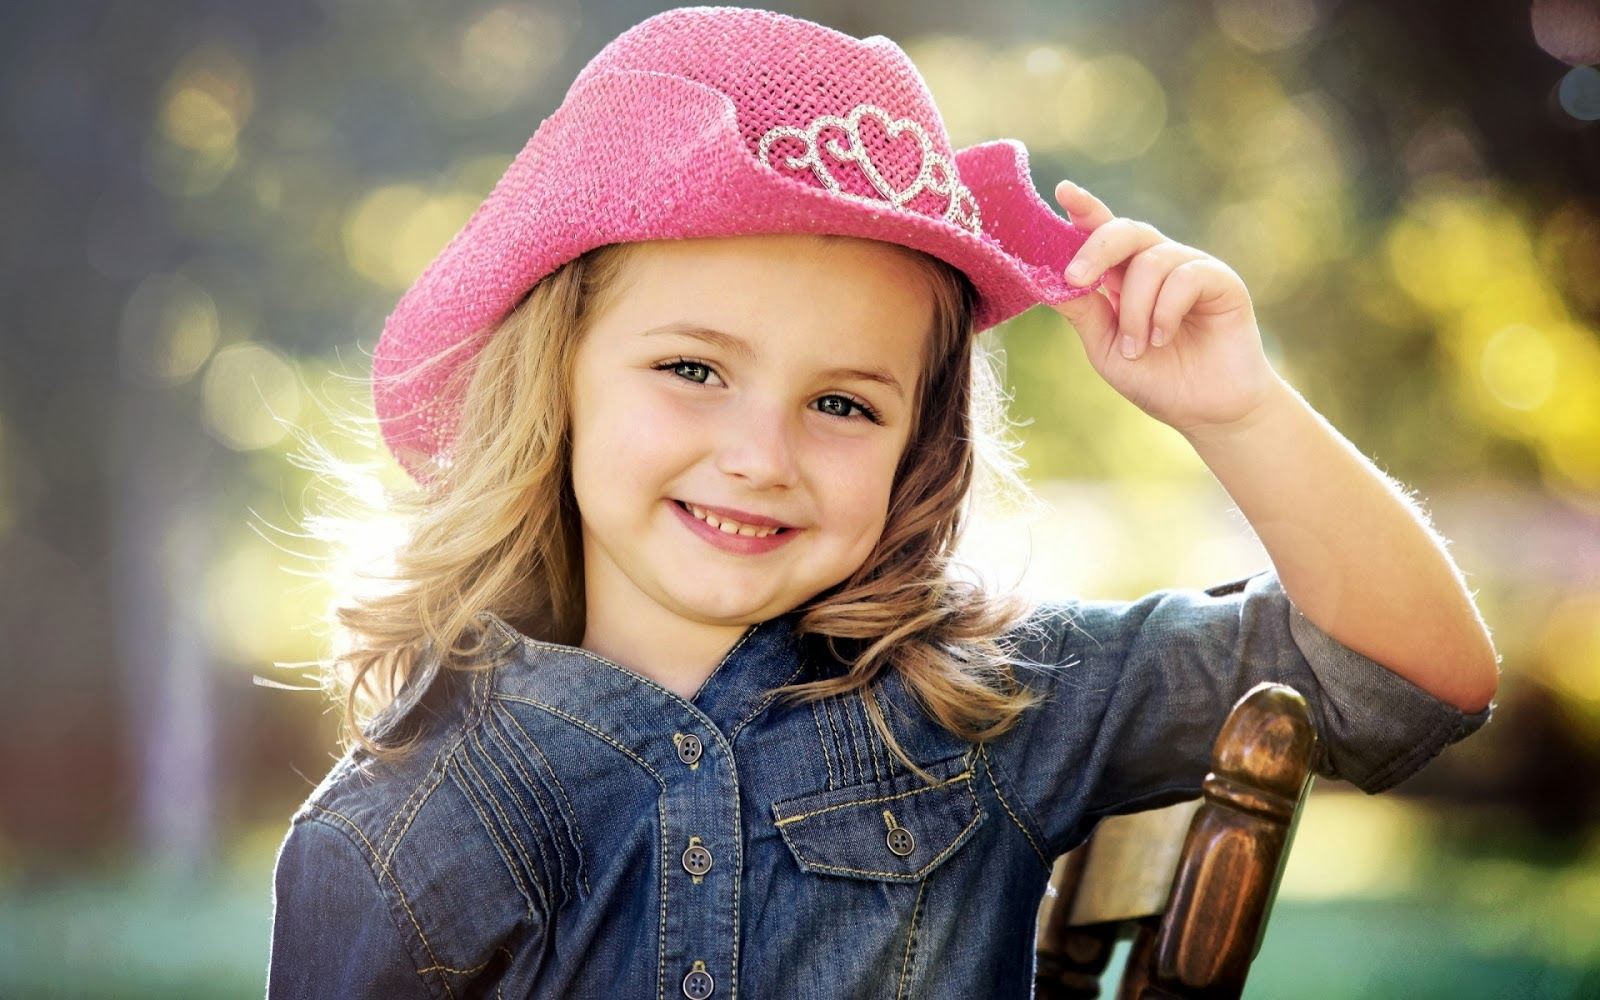 Cute Little Baby Girl With Nice Pink Hat HD Wallpaper